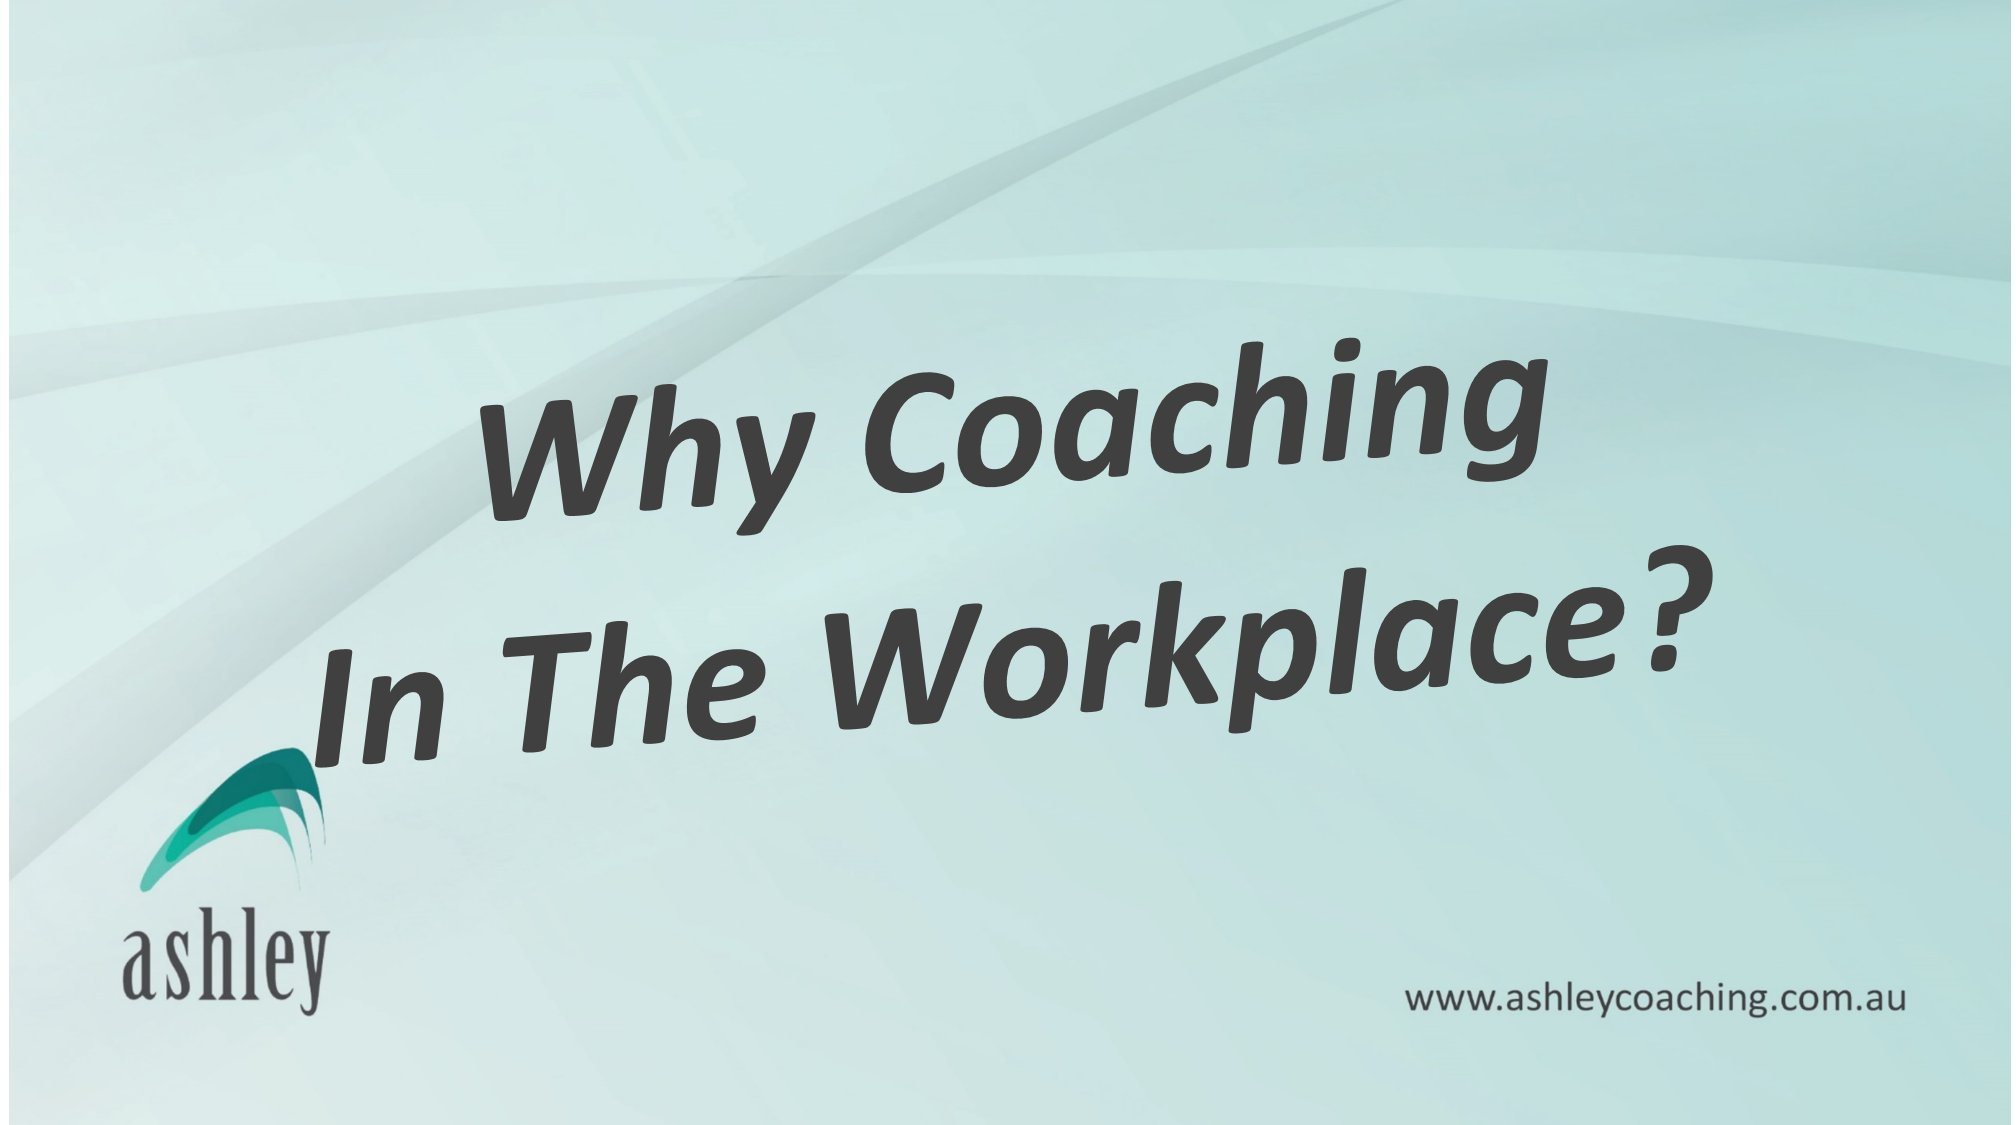 coaching in the workplace Coaching is a term thrown around often in the workplace but can have various meanings and interpretations in this article we'll focus on what coaching looks like.